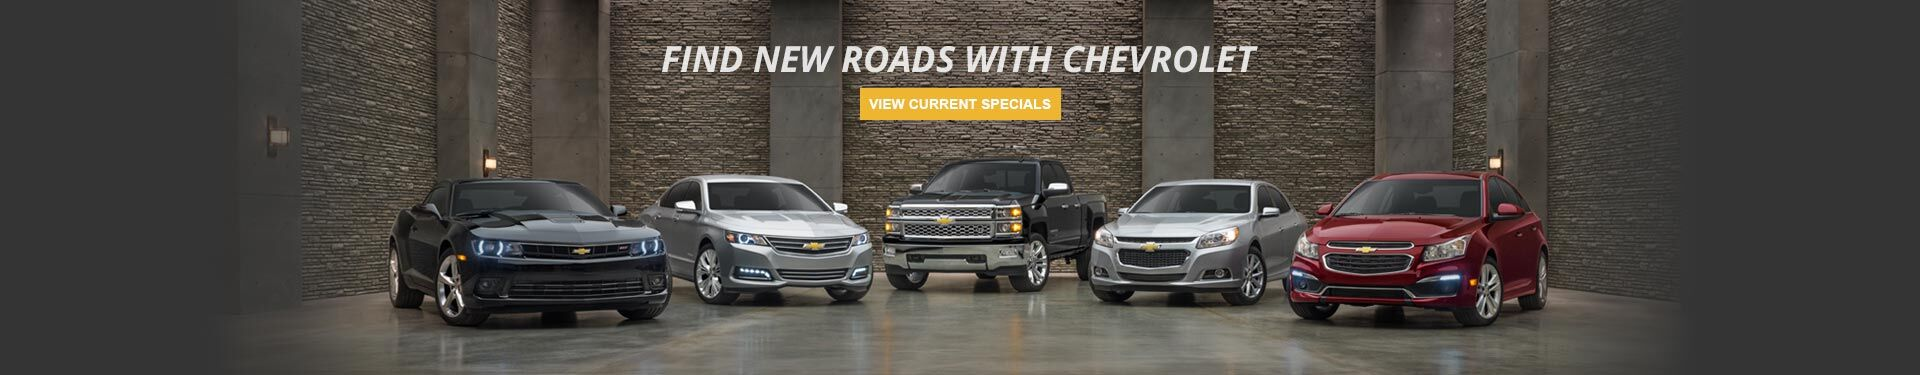 New Chevrolet Inventory